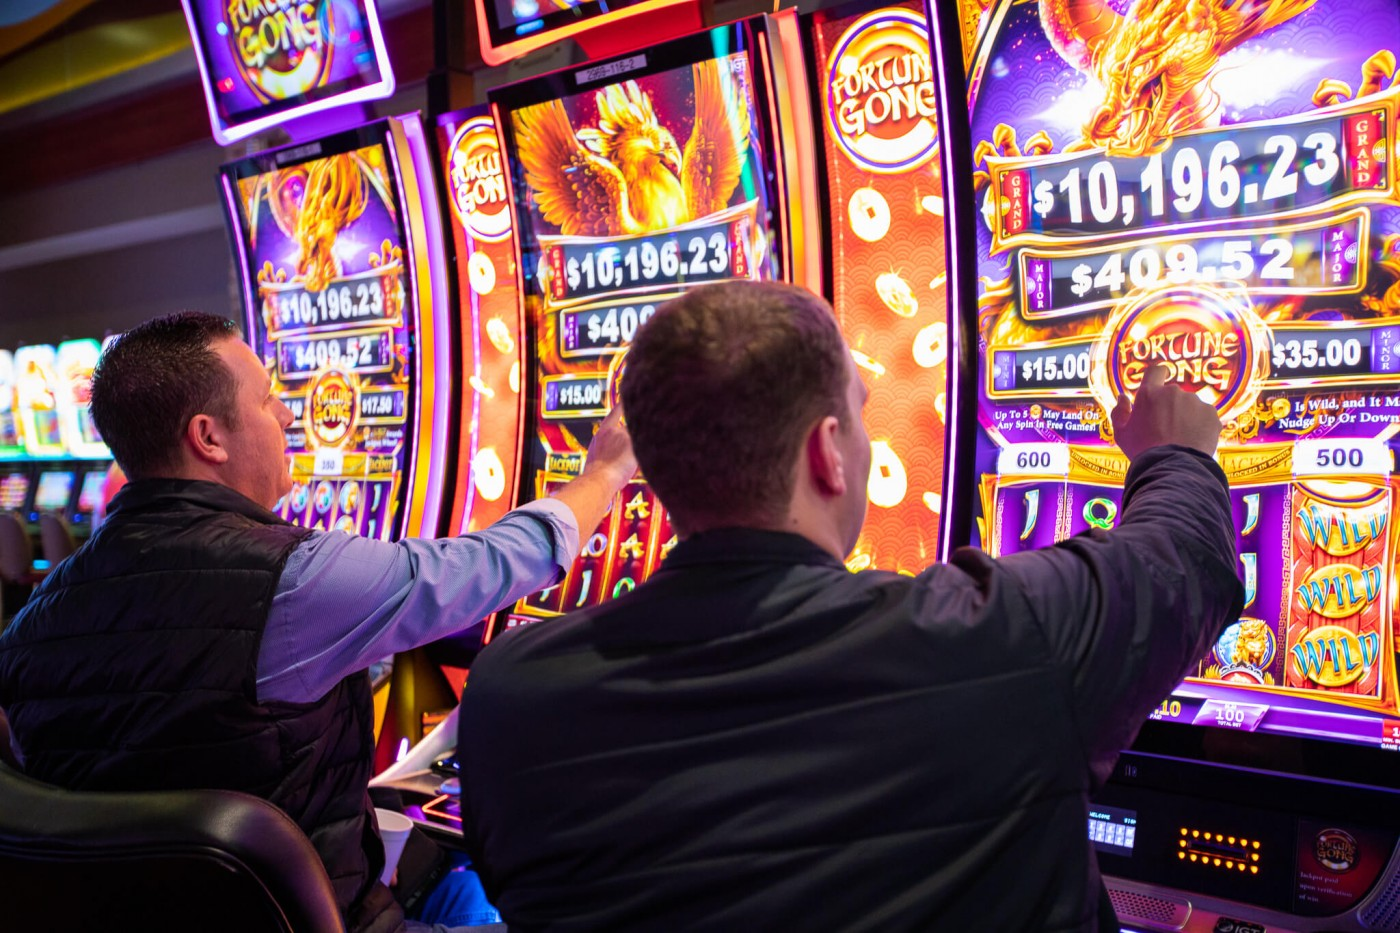 What are the tips to win slot machines?